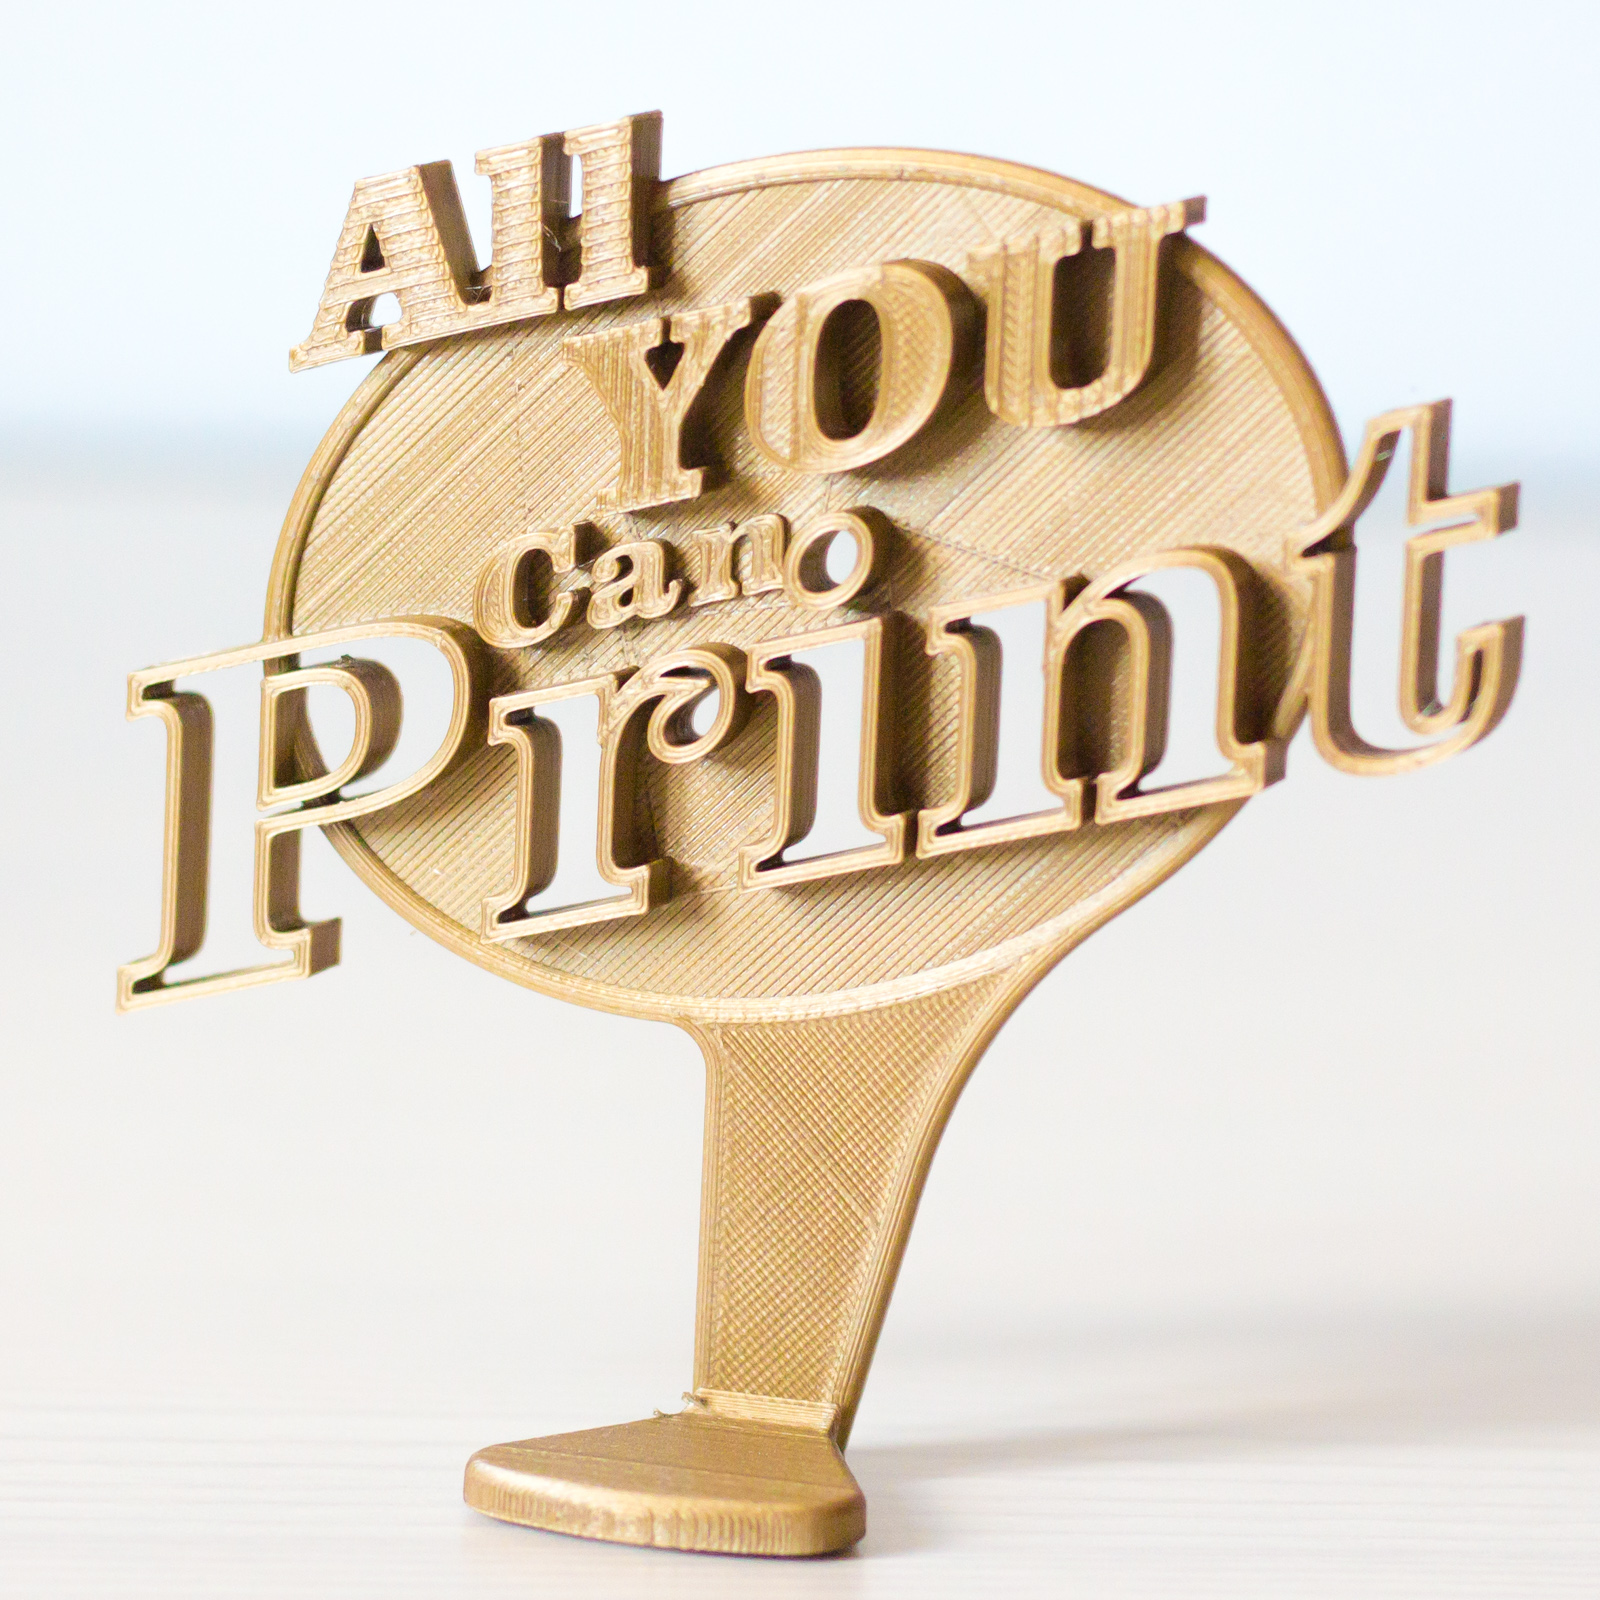 All you can print